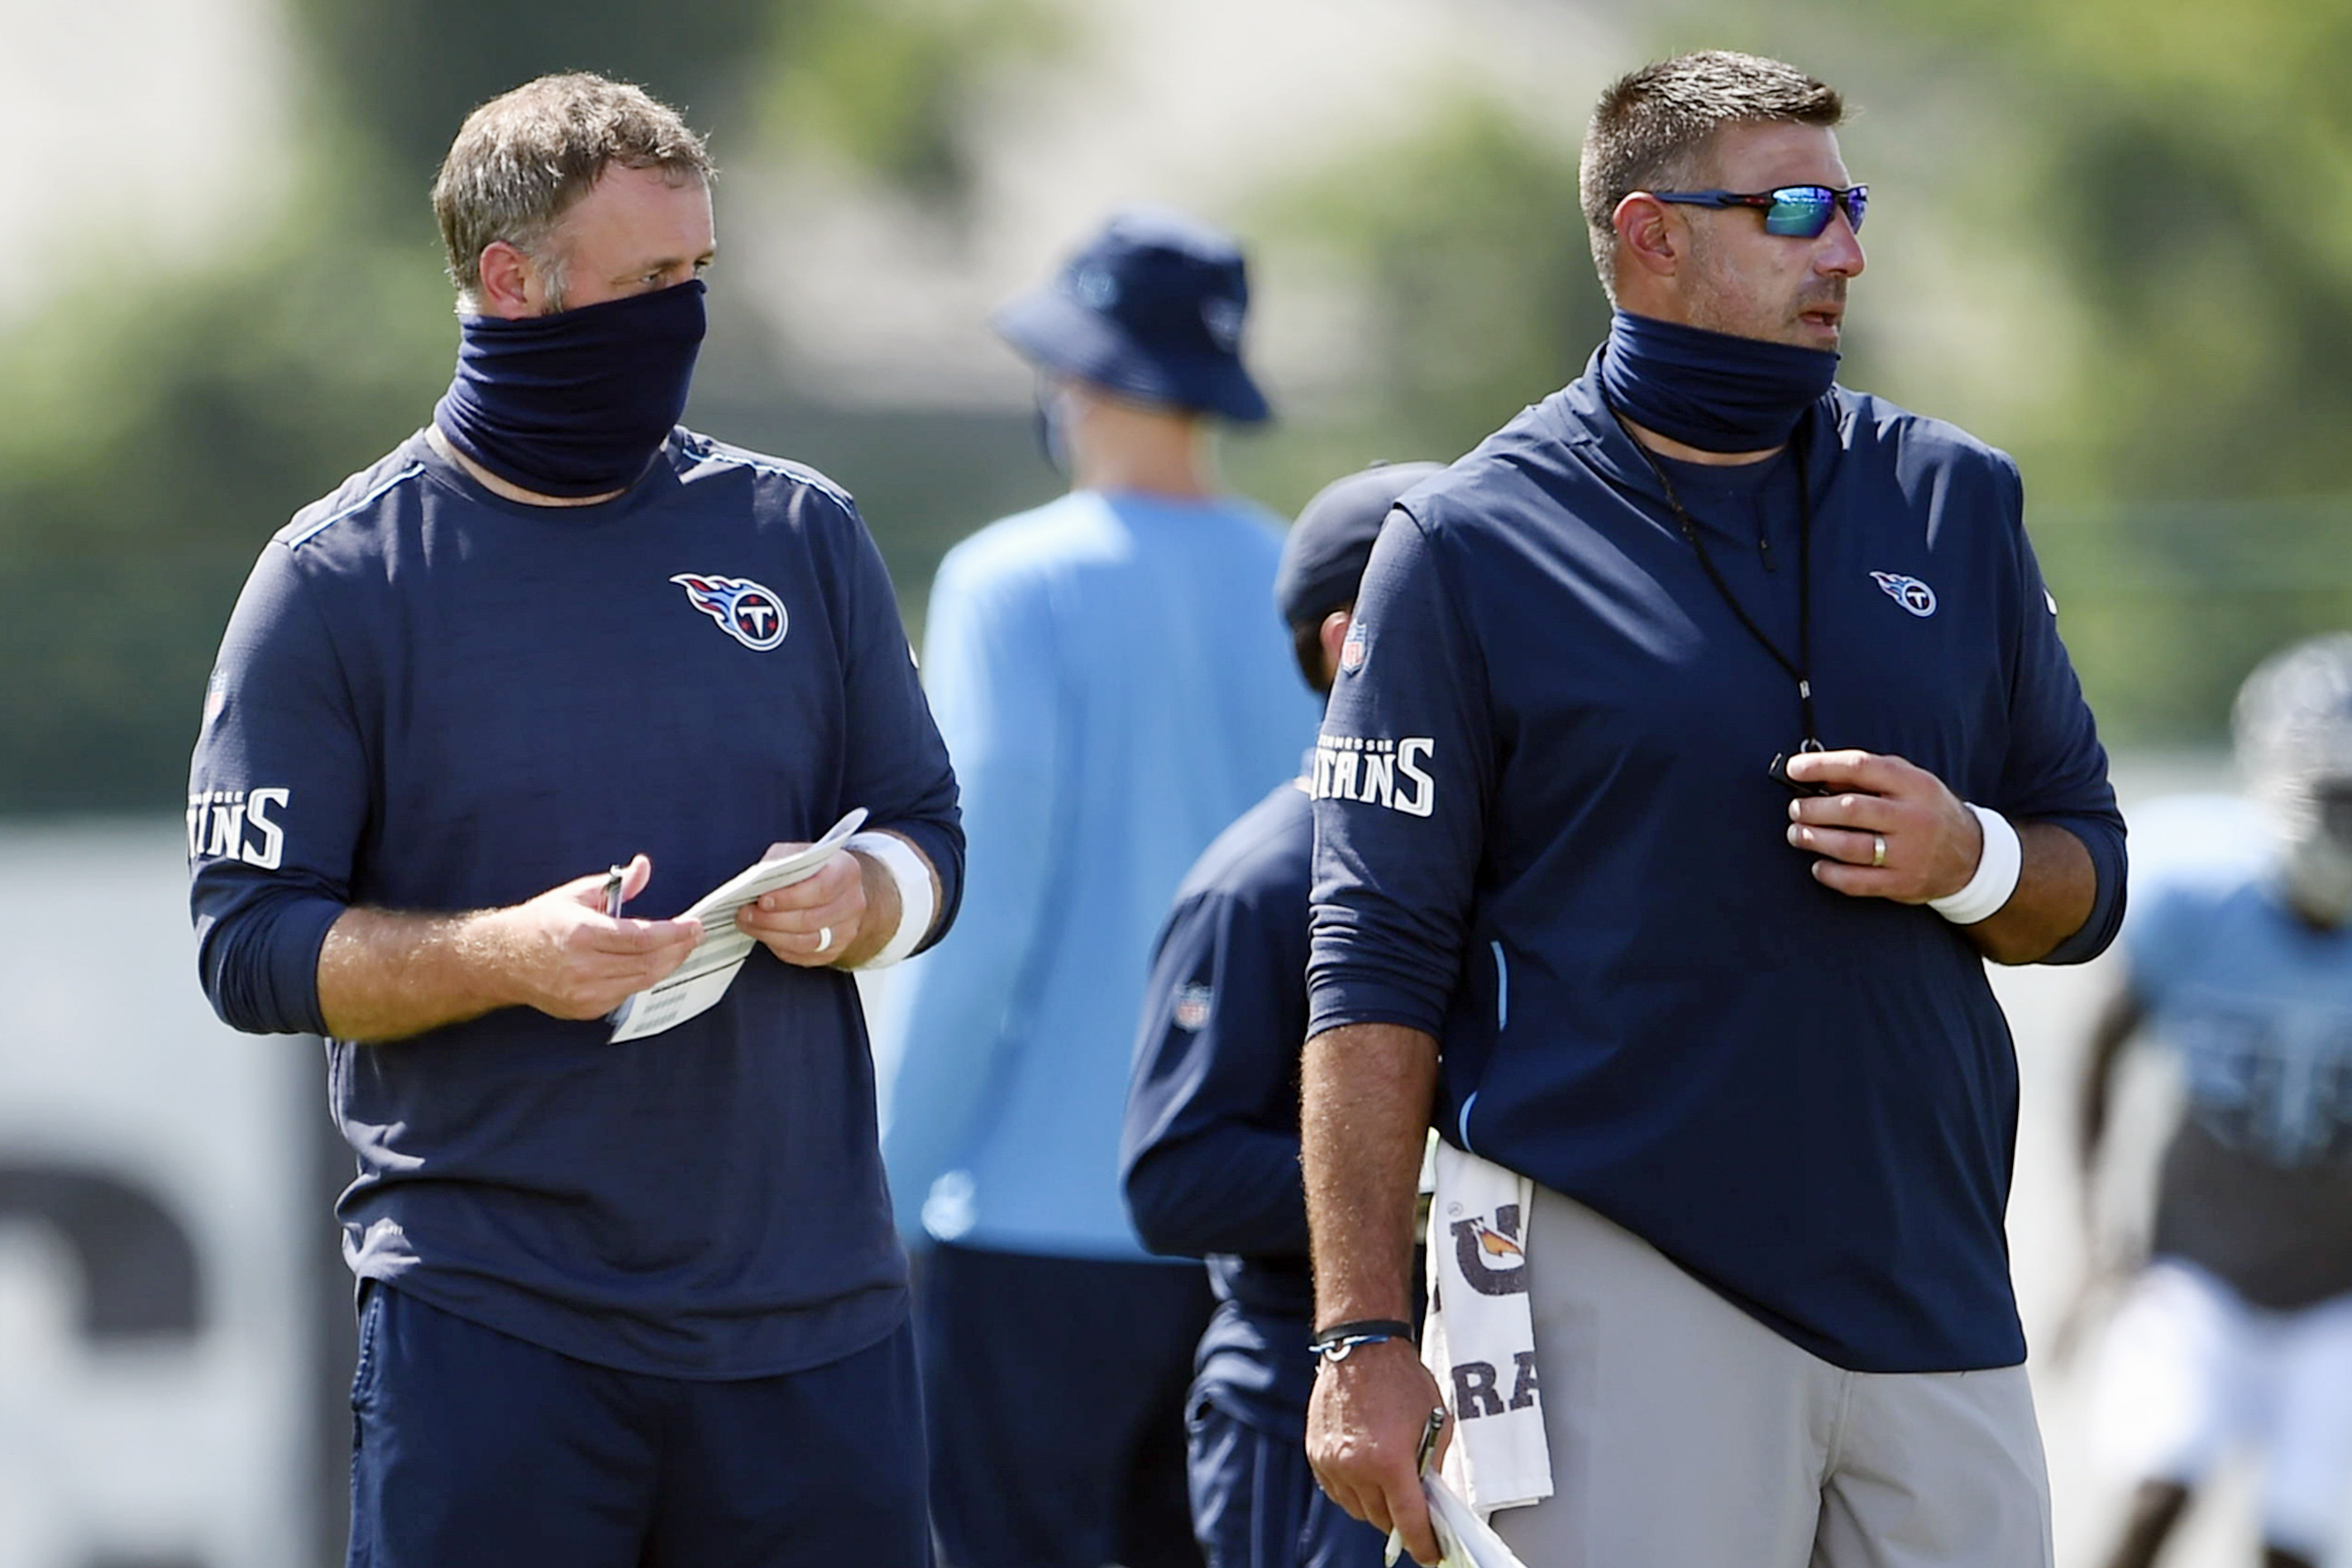 Tennessee Titans outside linebackers coach Shane Bowen, left, and head coach Mike Vrabel watch players during NFL football training camp in Nashville, Tenn., on In Aug. 24, 2020.